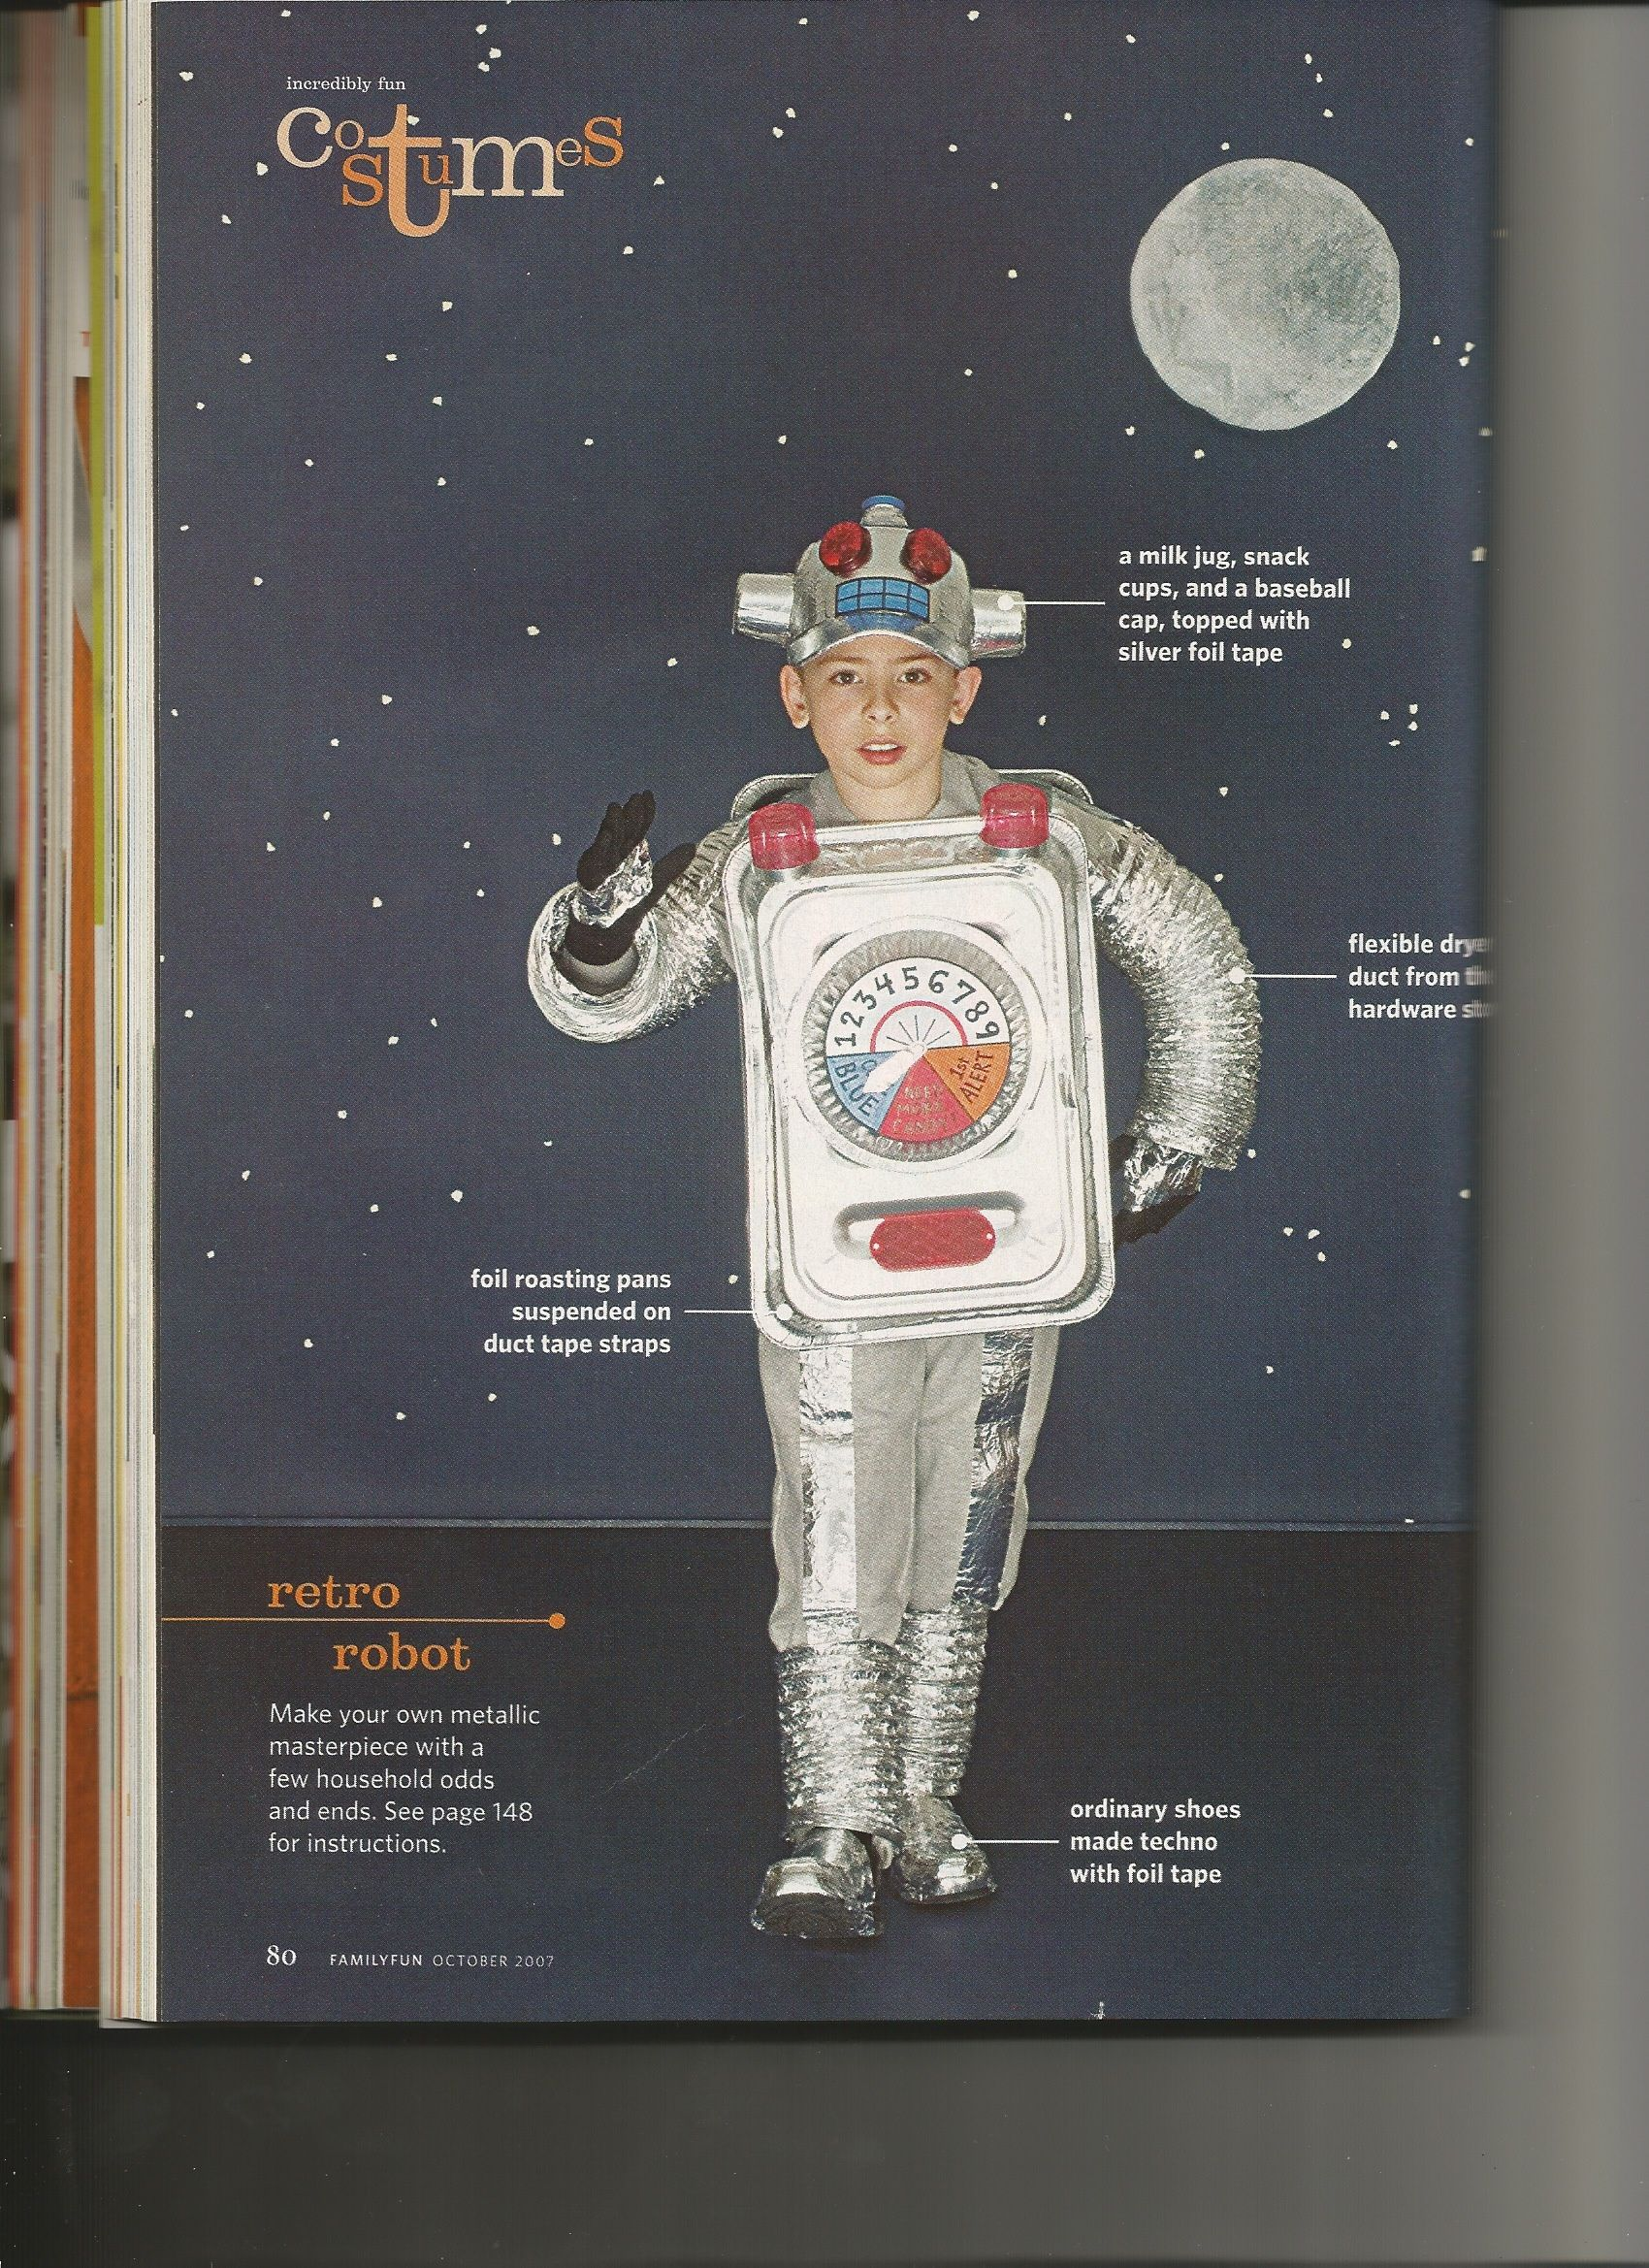 robot costume from family fun magazine october 2007 issue - Family Fun Magazine Halloween Crafts